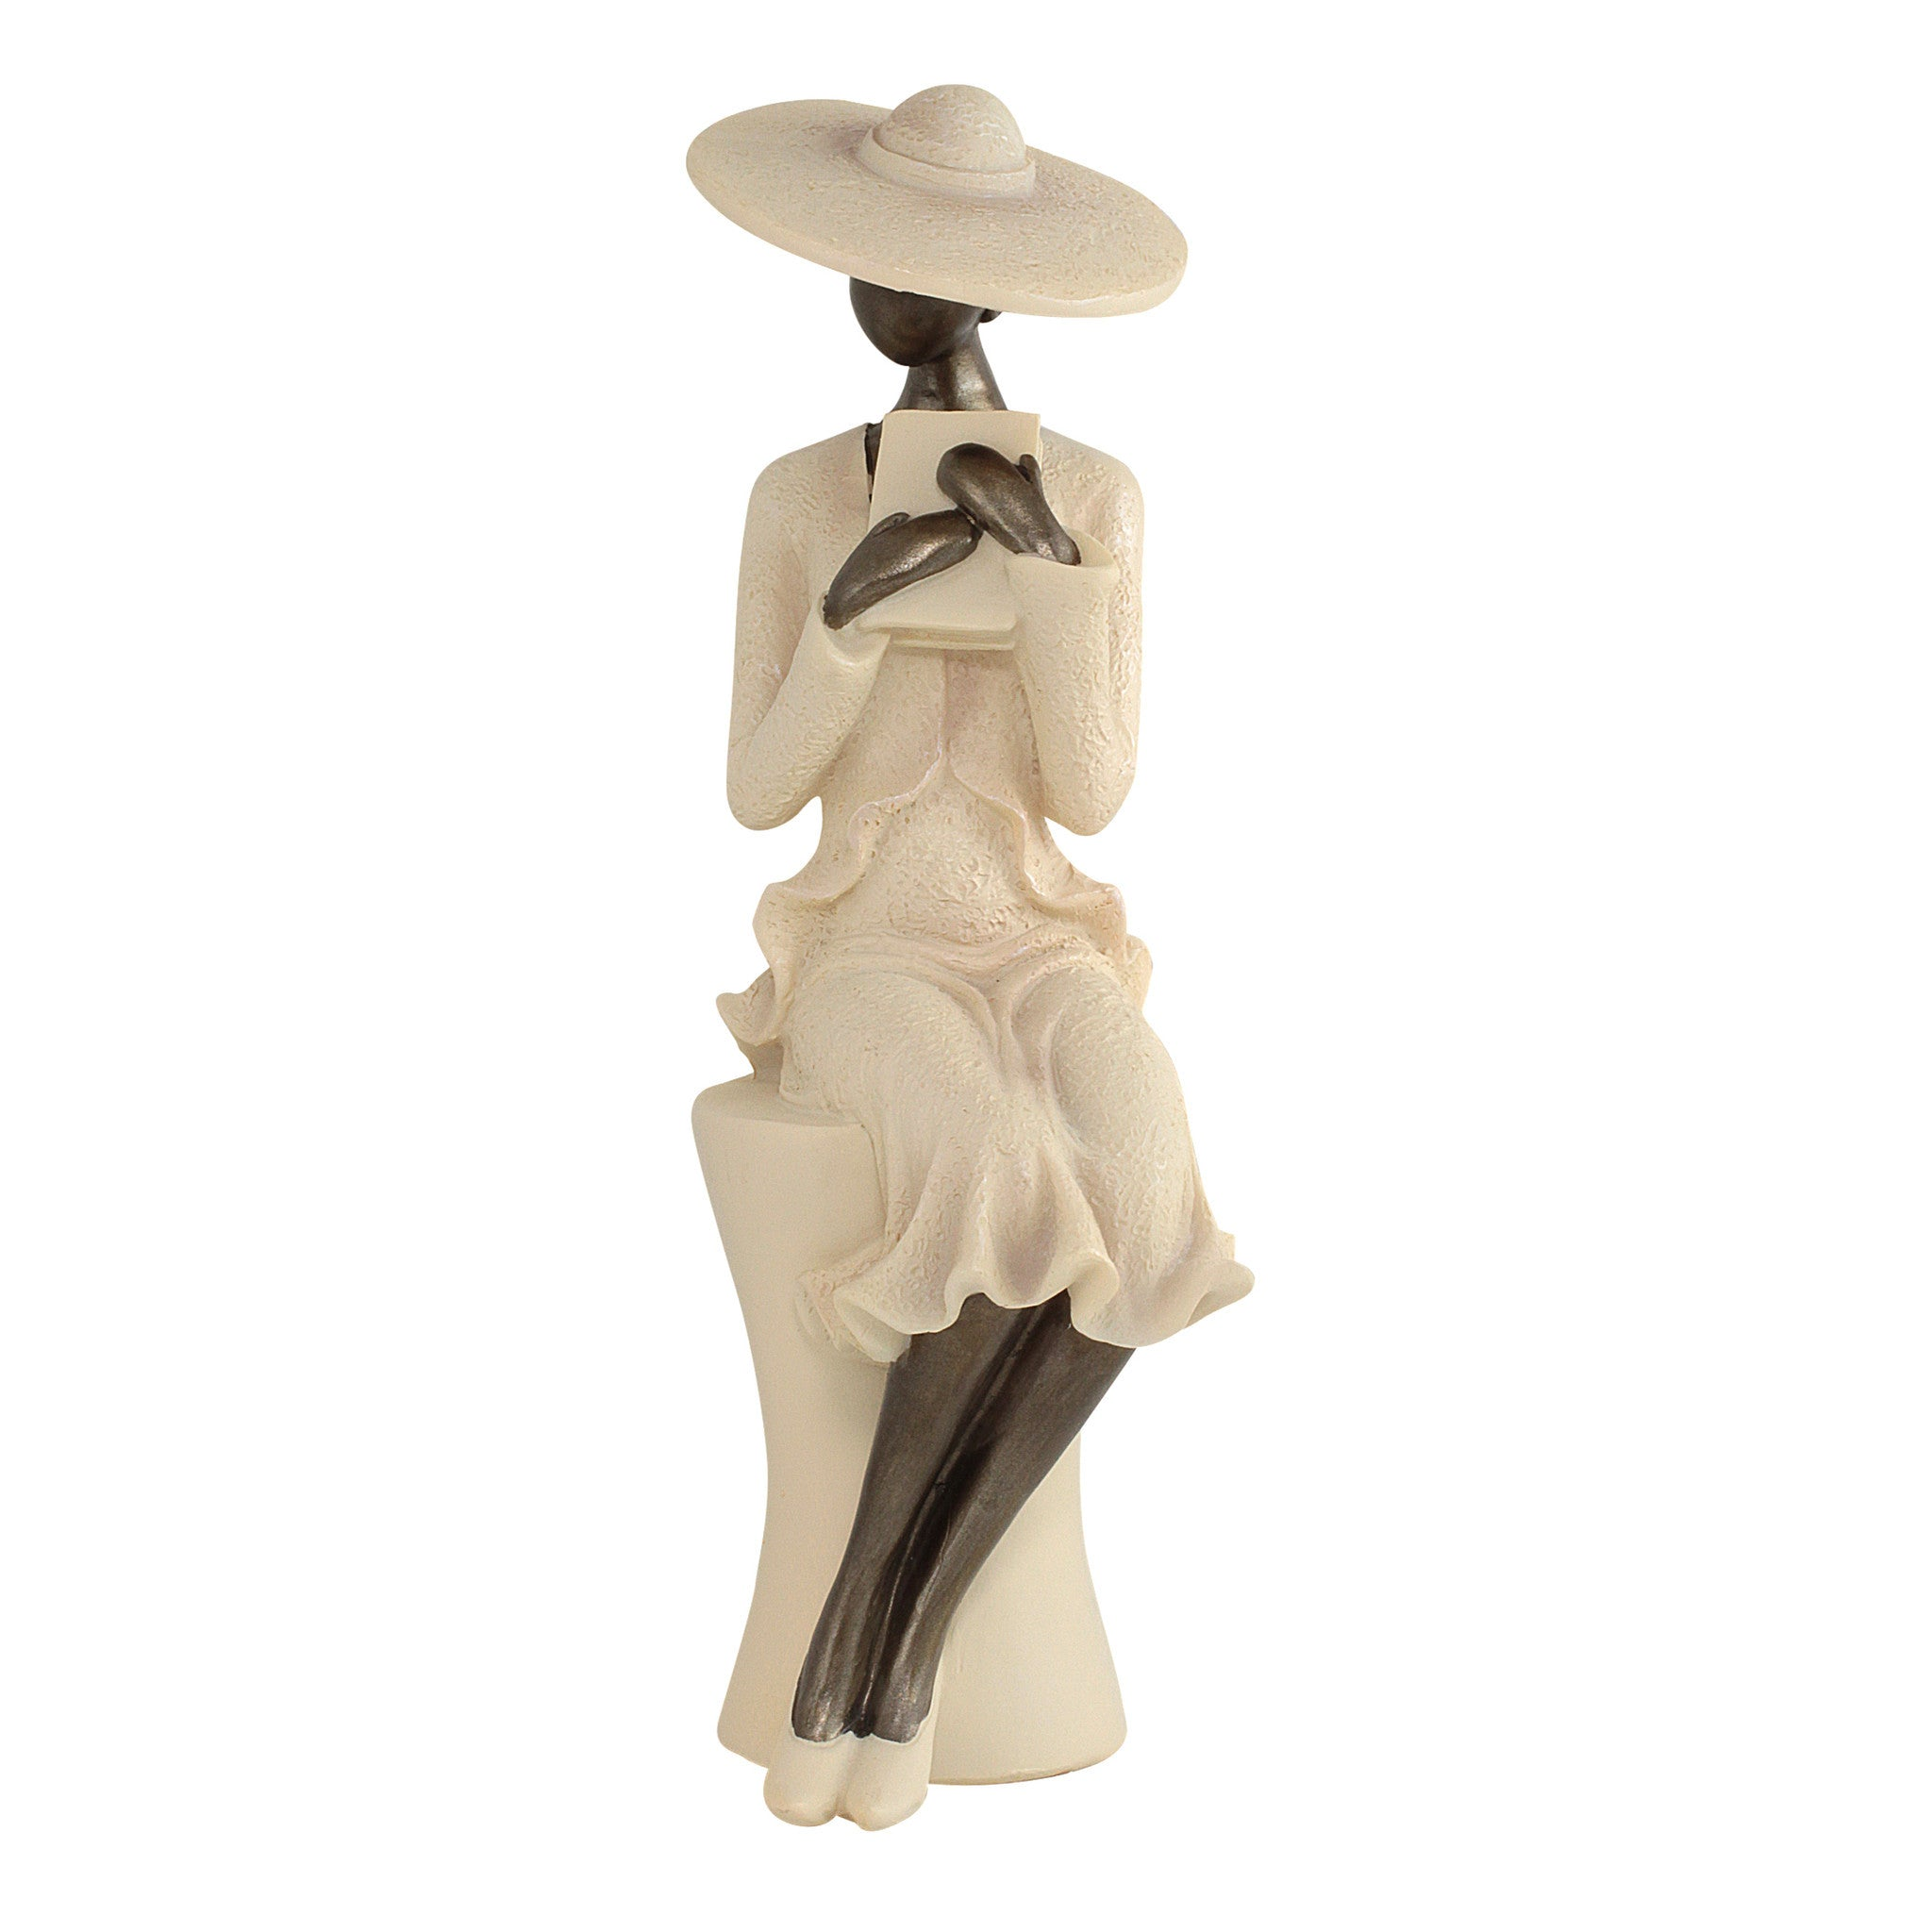 Virtuous Woman Figurine: Virtuous Woman Collection by Unison Gifts